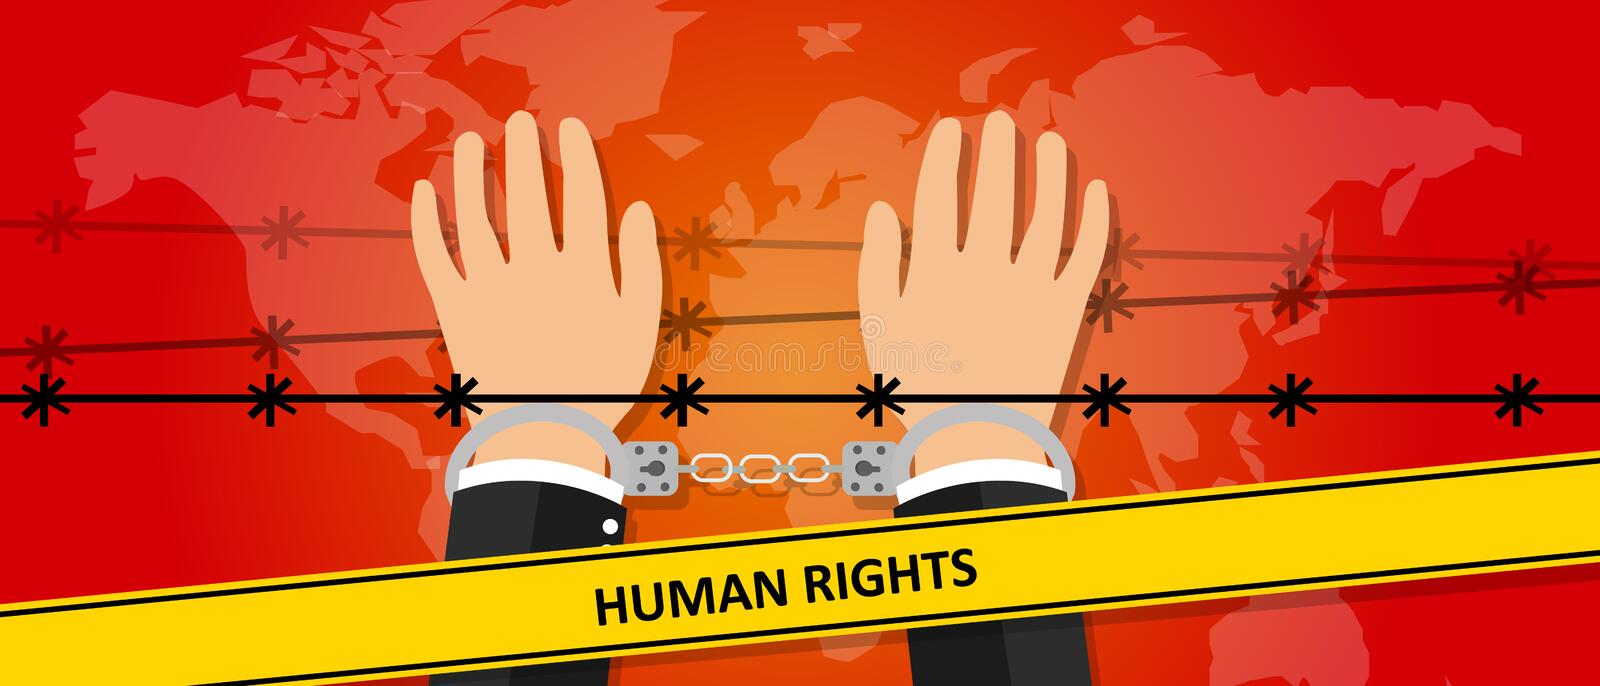 Human rights freedom illustration hands under wire crime against humanity activism symbol handcuff. Drawing vector illustration